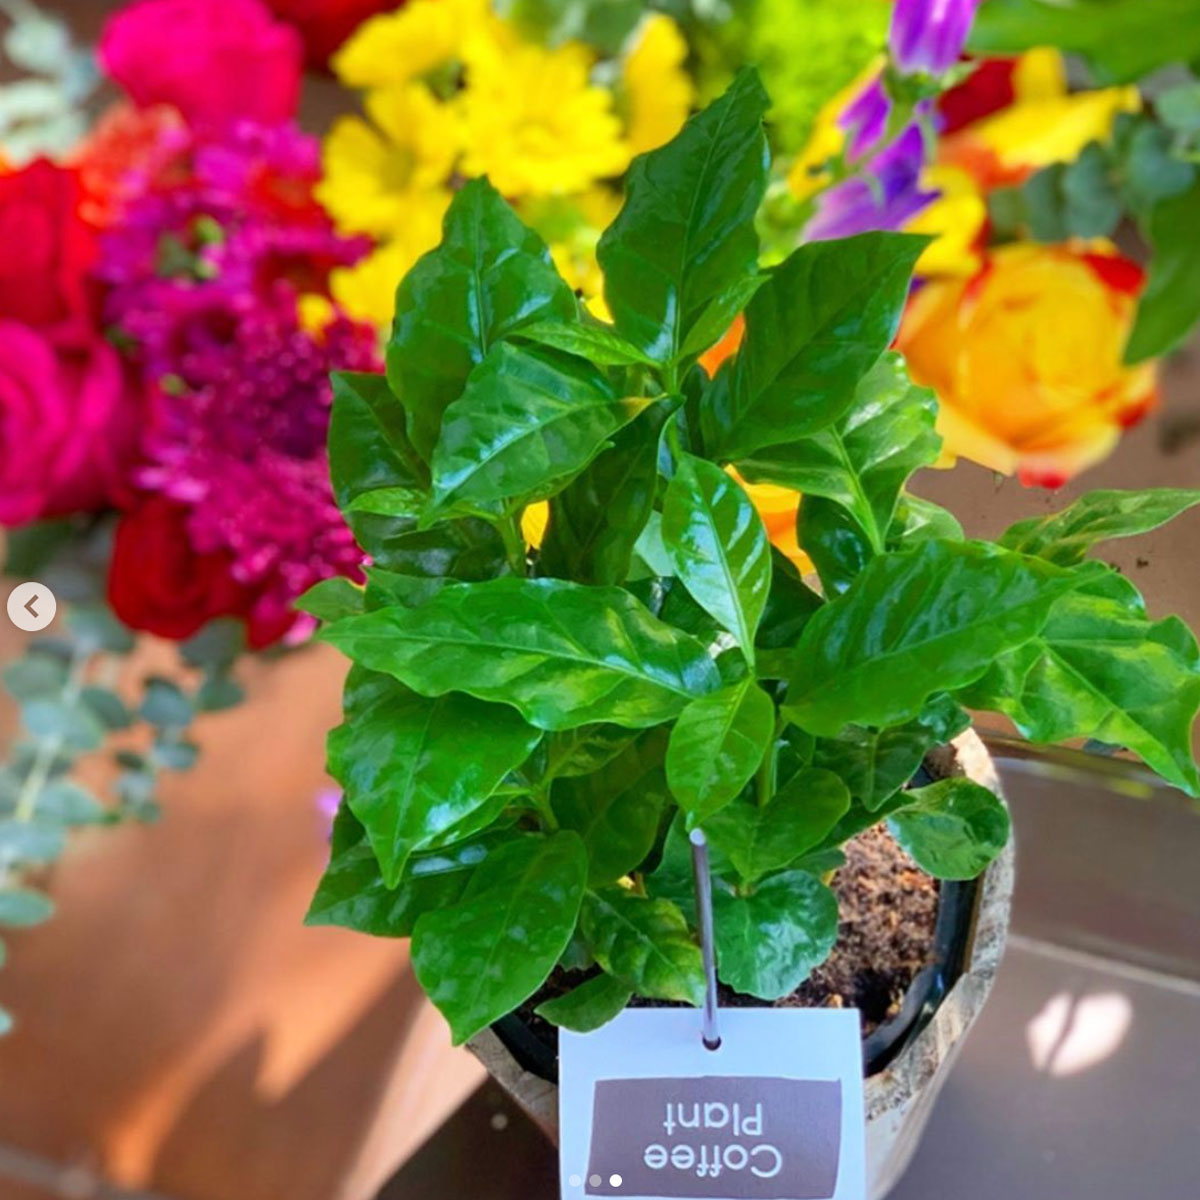 Trader Joe's Is Selling $7.99 Coffee Plants to Perk Up Your Living Space